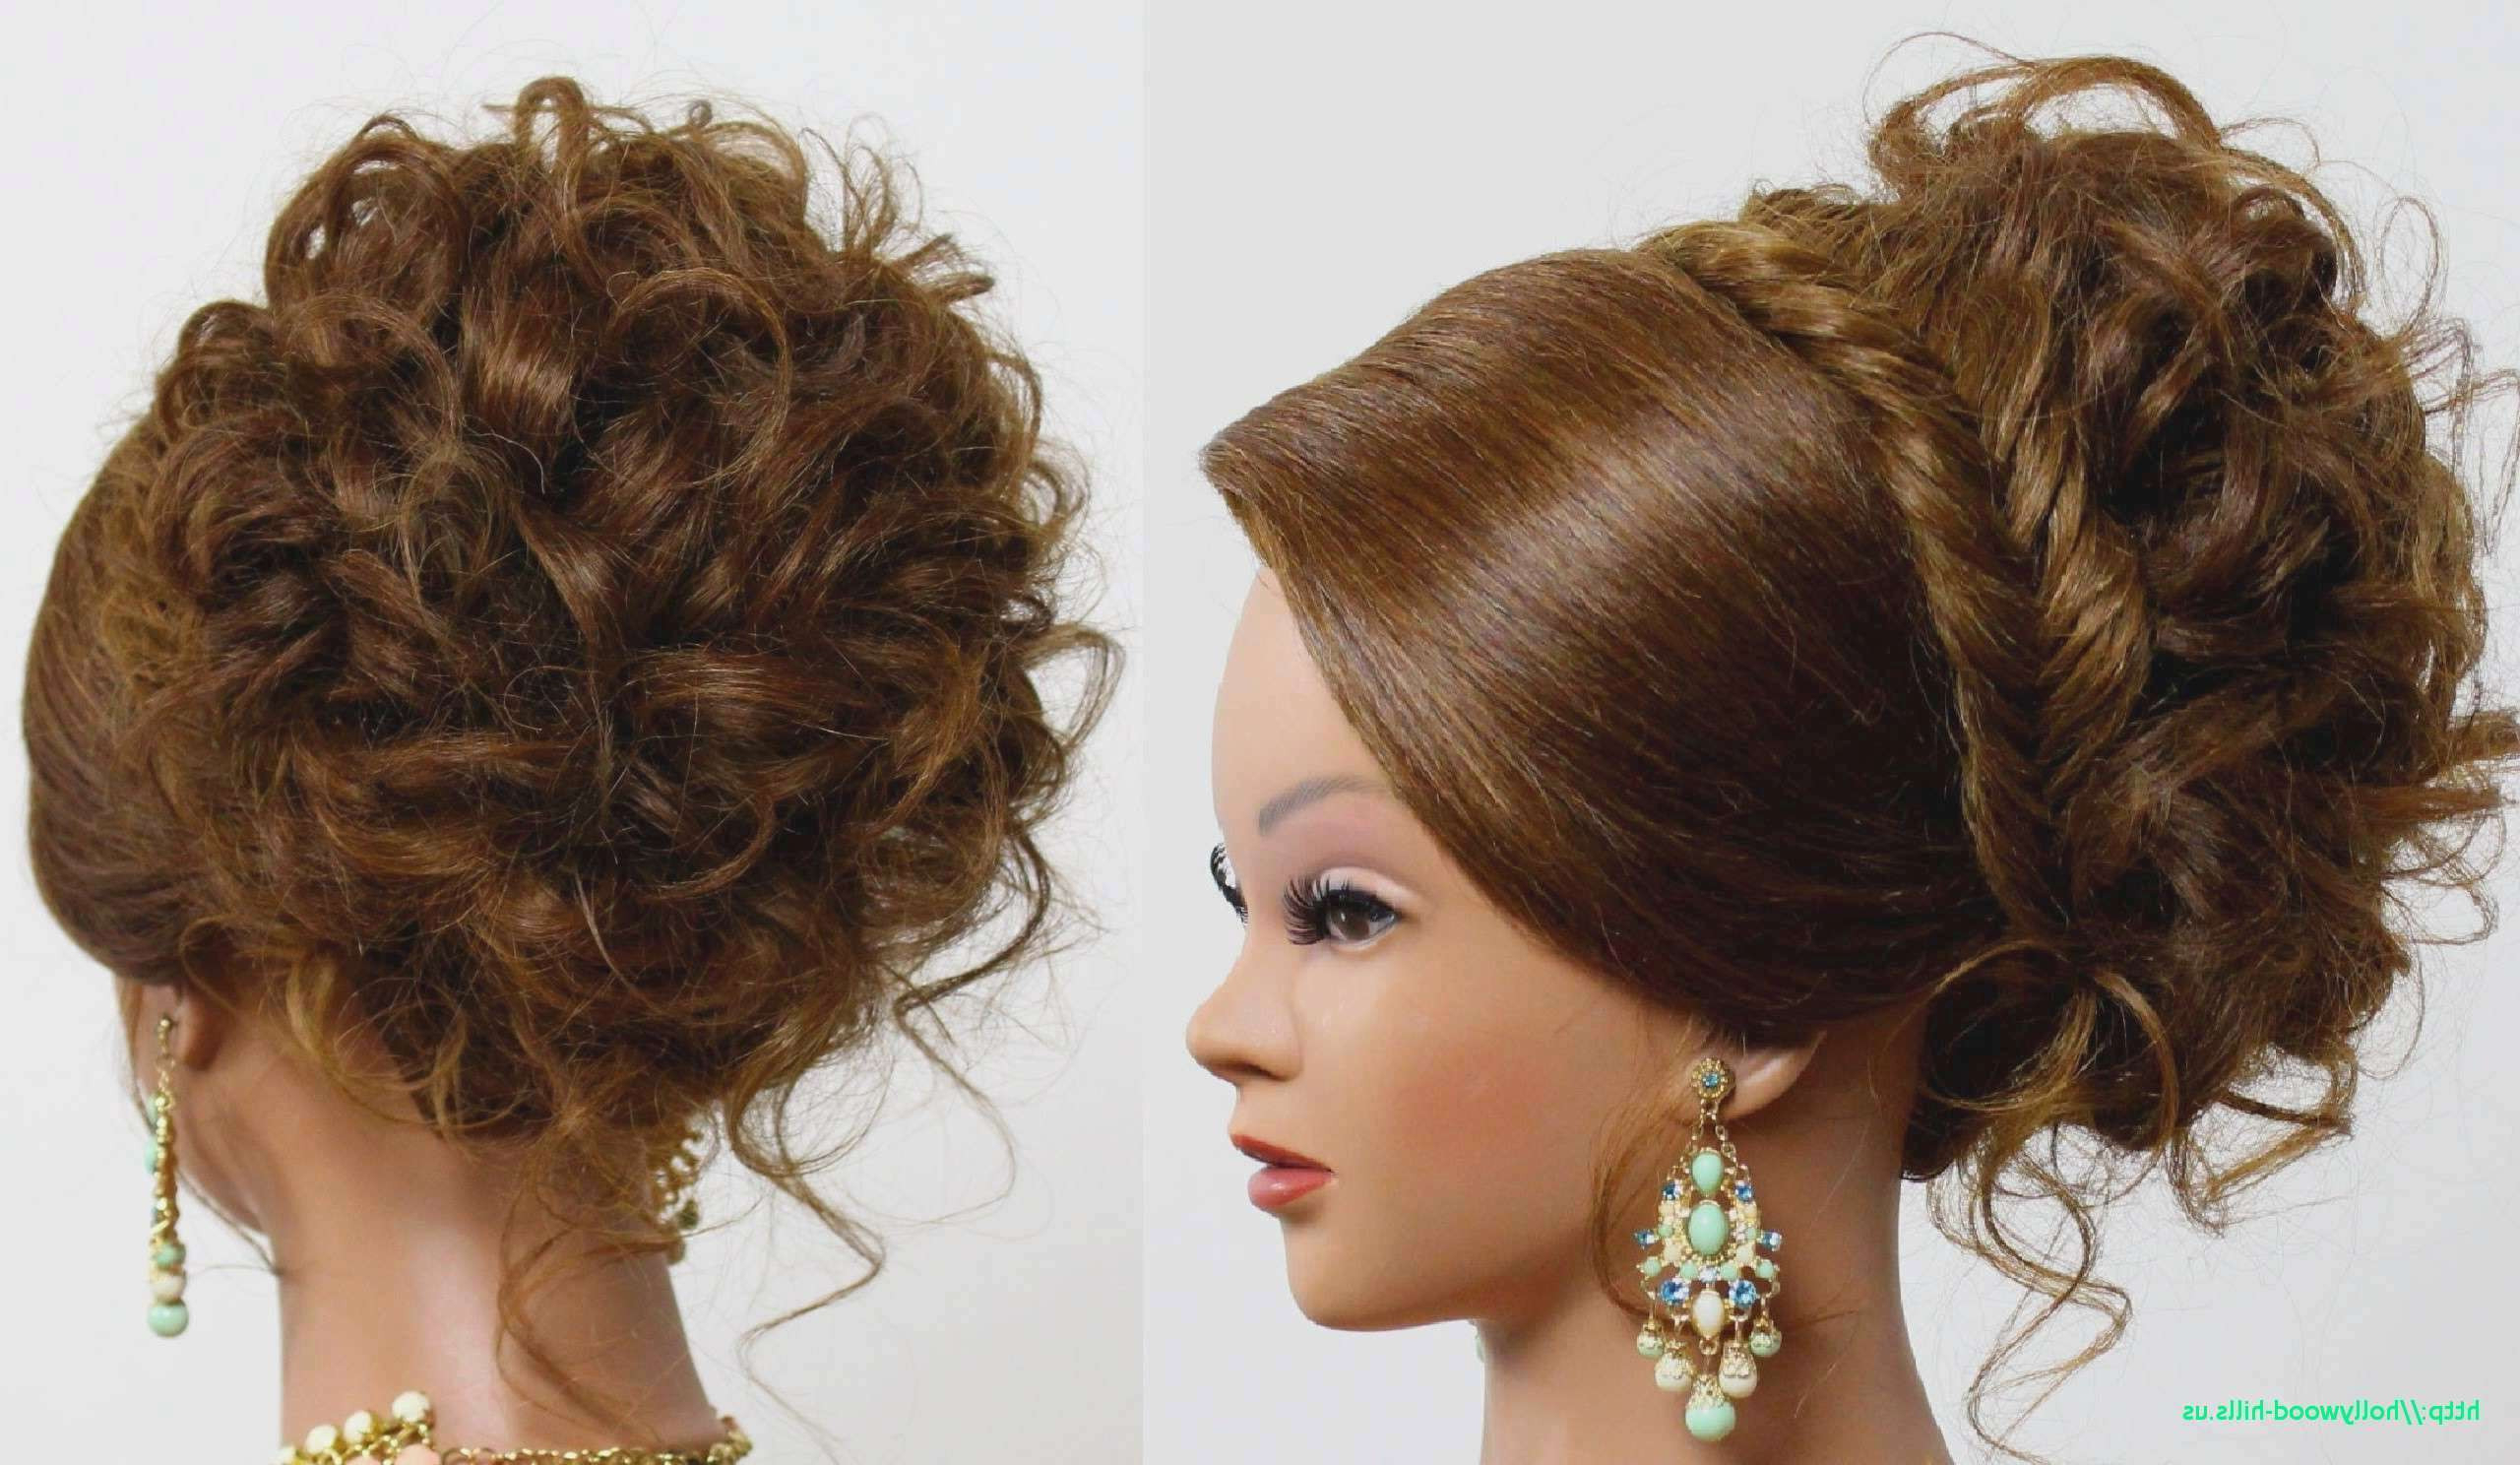 Formal Updos For Short Hair - Bcretreat % % % throughout Short Formal Hairstyles